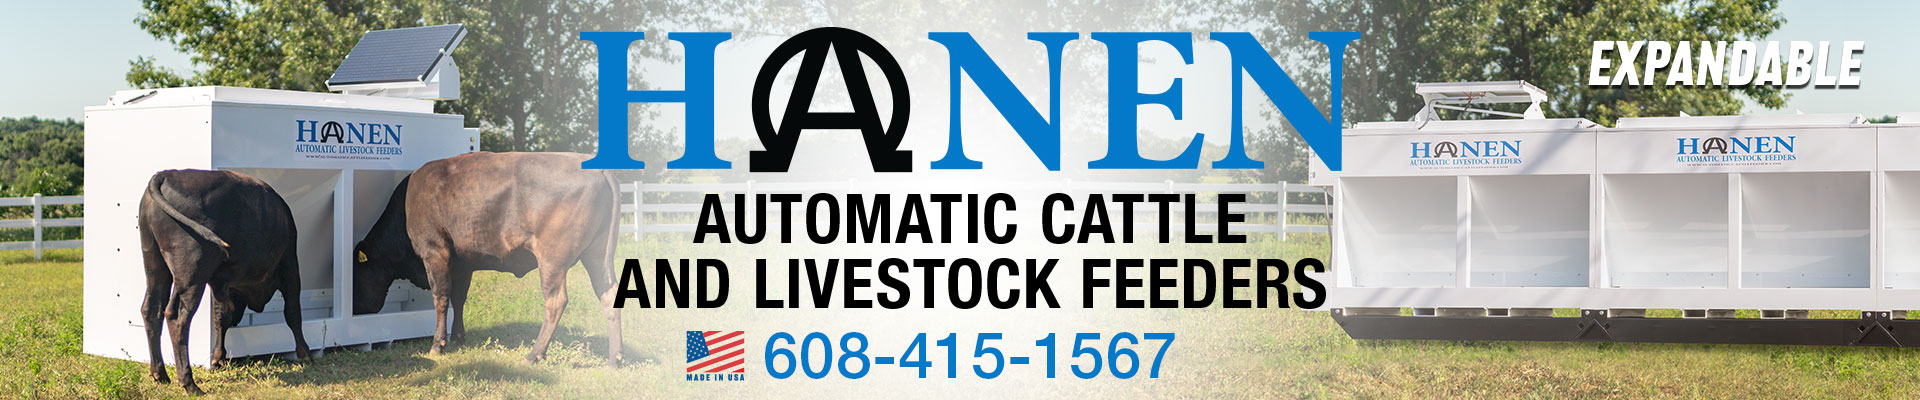 Welcome to Hanen Automatic Cattle Feeders